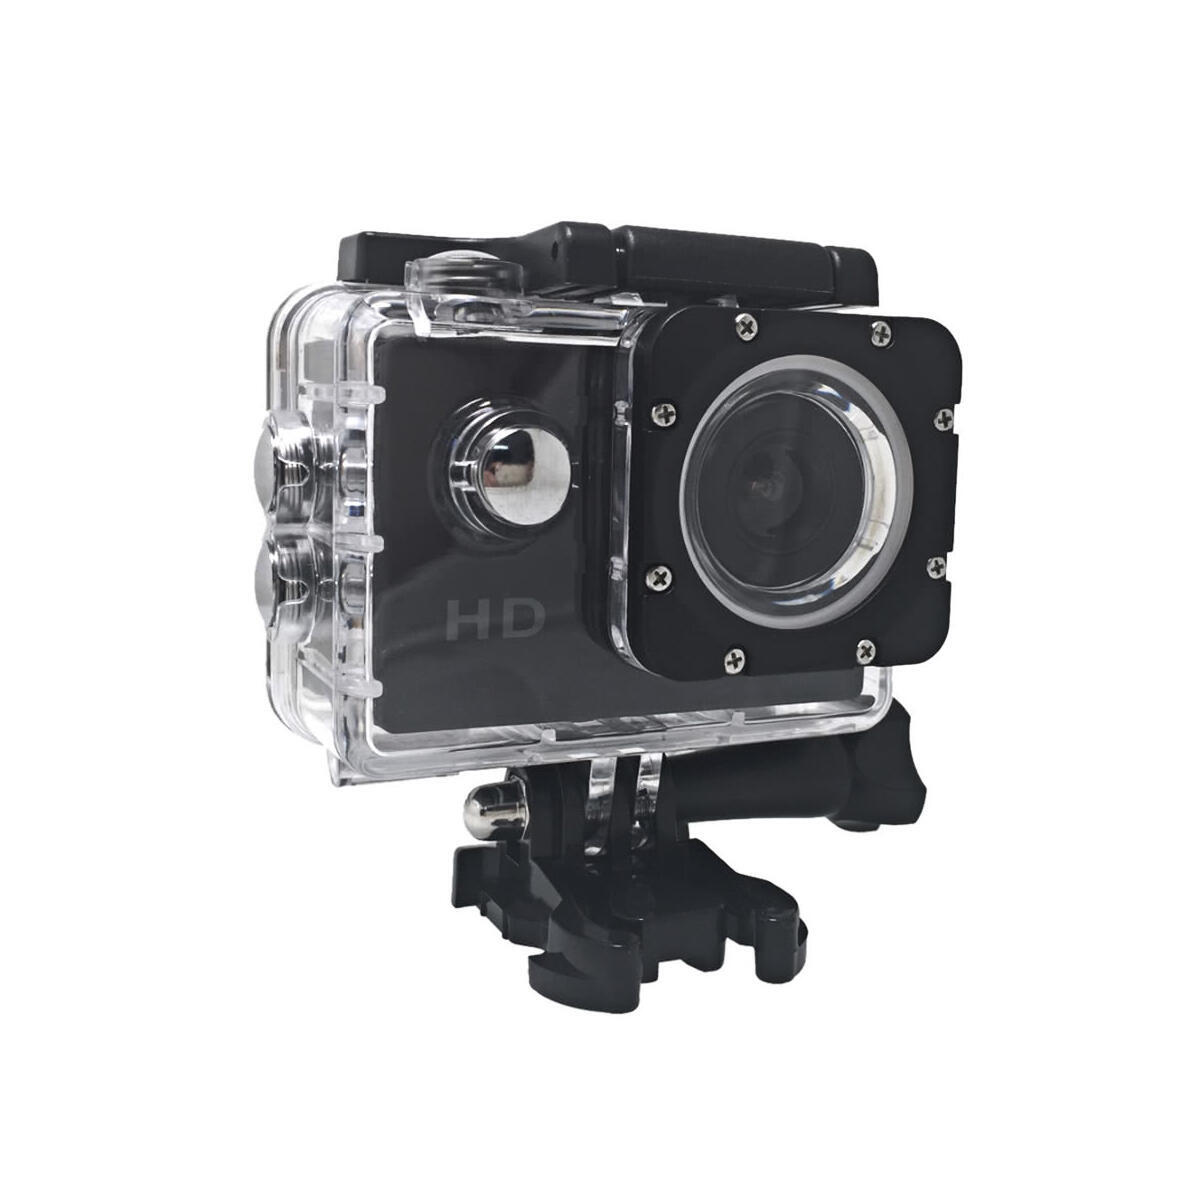 A7 - High Definition - Mini DV Sport Action Camera